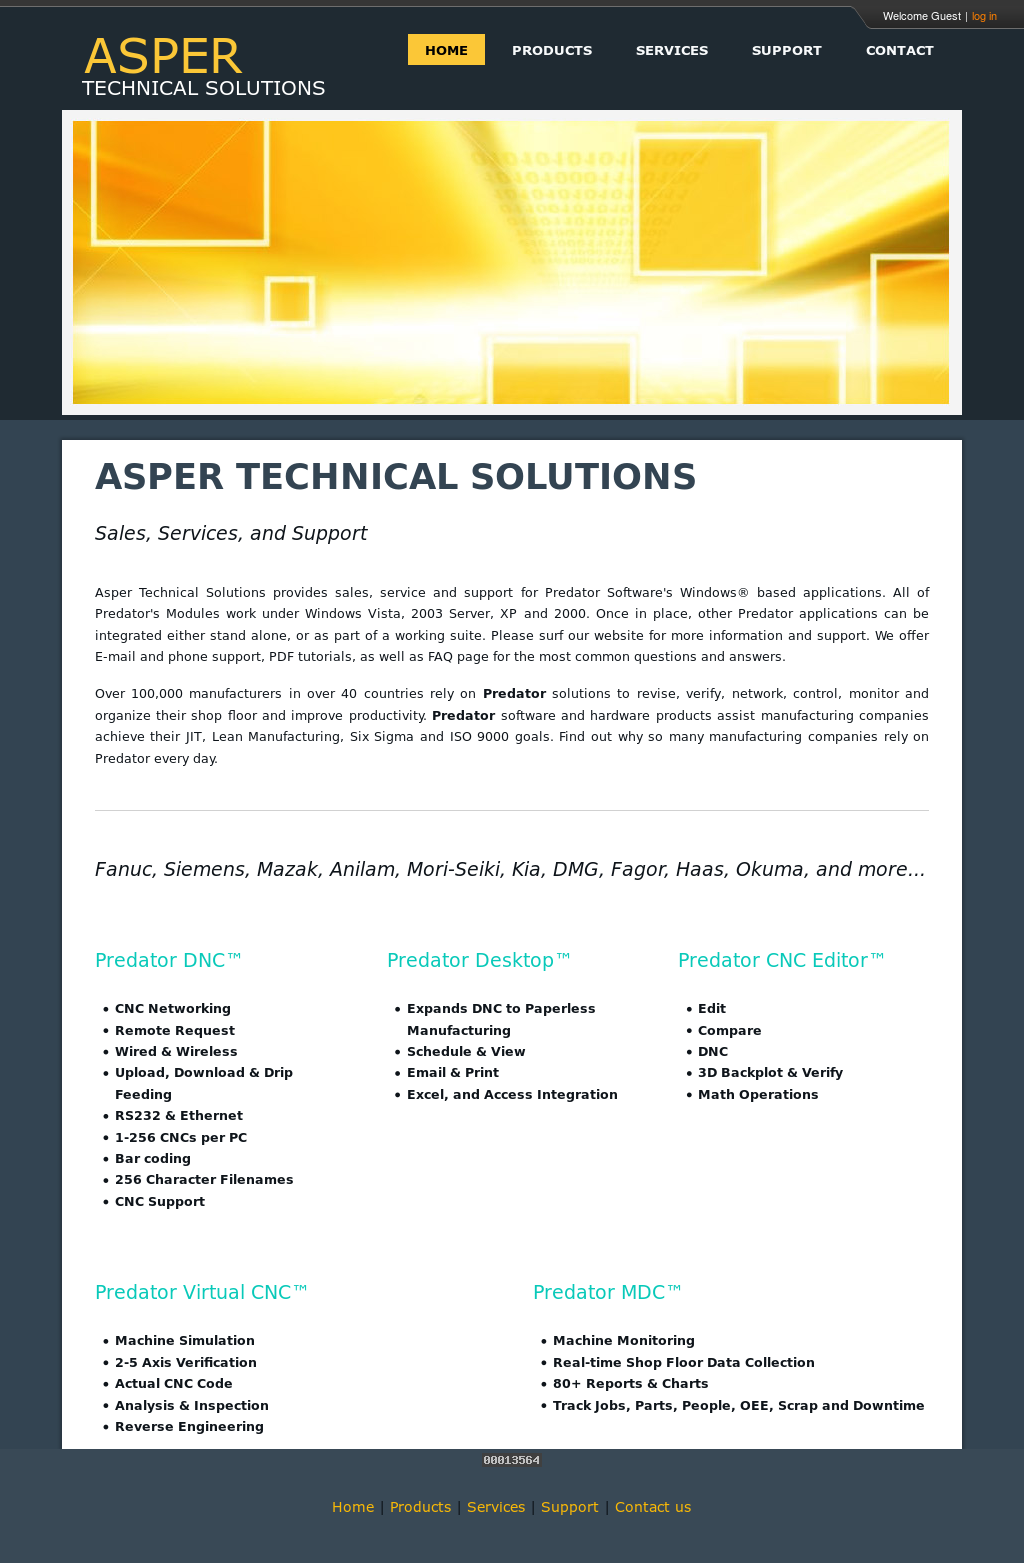 Asper Technical Solutions Competitors, Revenue and Employees